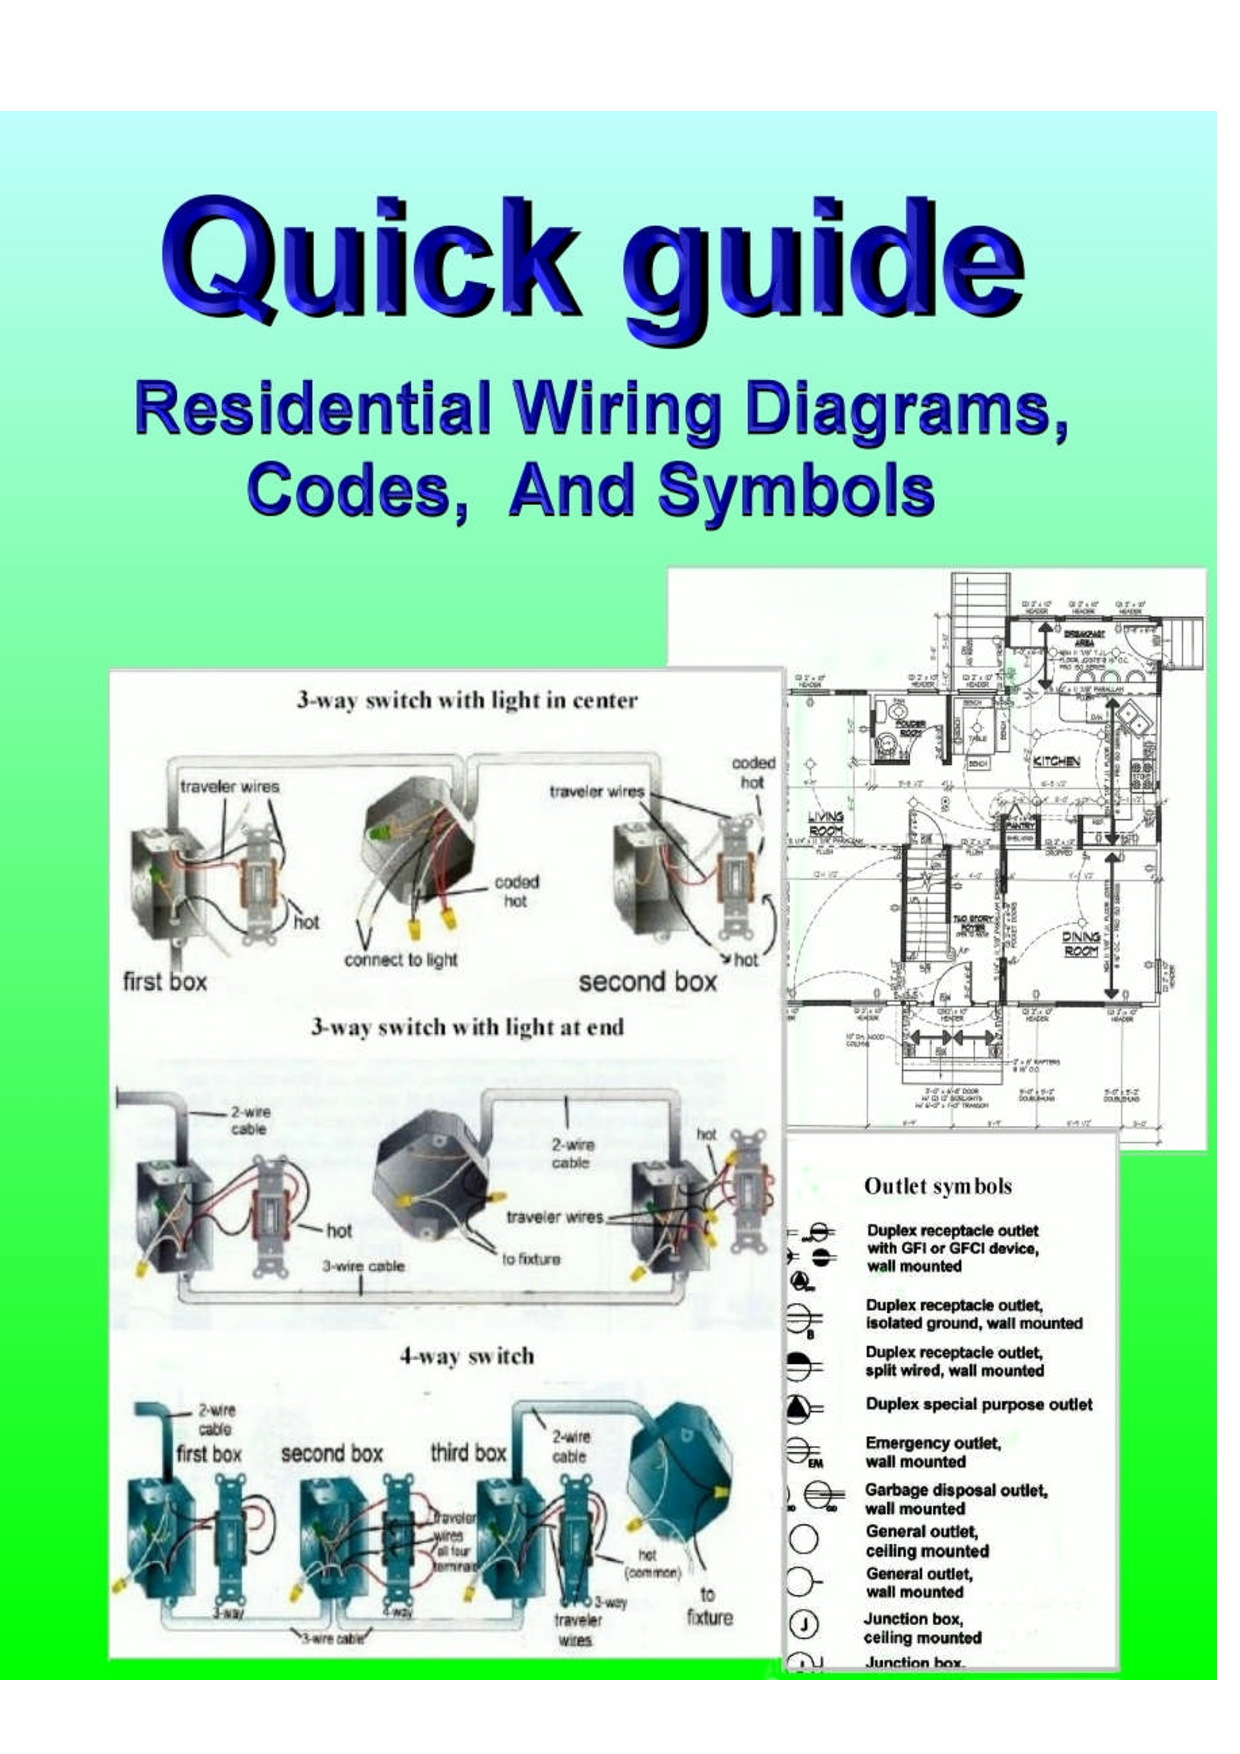 home electrical wiring diagrams pdf download legal documents 39 rh pinterest com Electrical Wiring Symbols Electrical Outlet Wiring Diagram